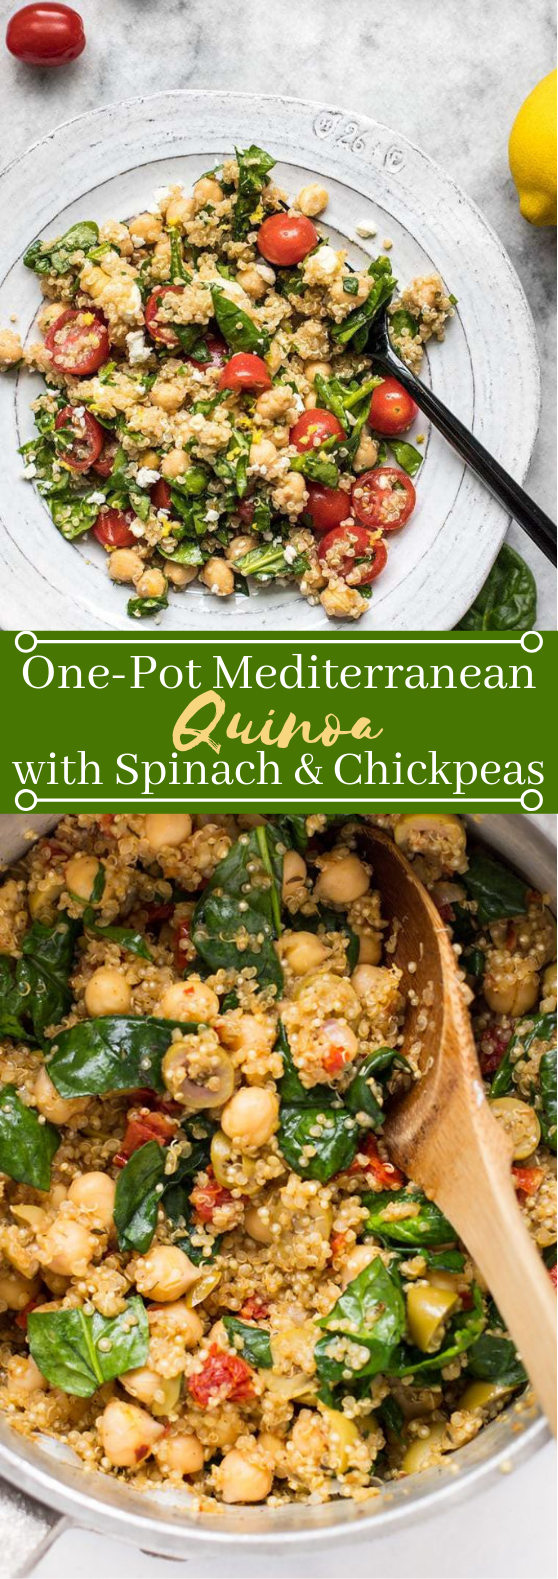 One-Pot Mediterranean Quinoa with Spinach & Chickpeas #vegan #chickpea